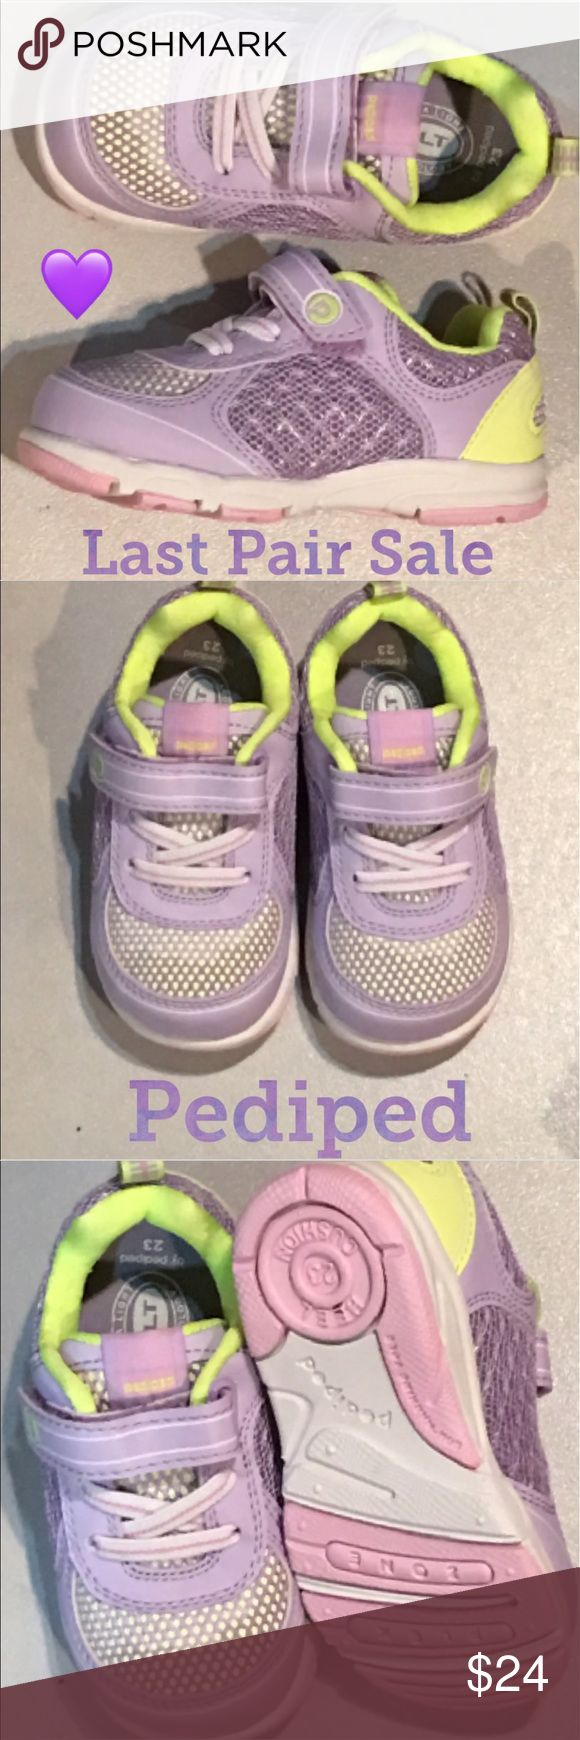 New Pediped Toddler Girls Sneaker Last Pair sale and plz forgive the photos because the lighting was poor.... this is a size 7 that runs a bit small... Cute lavender and ofc easy on easy off Velcro straps.😊 pediped Shoes Sneakers